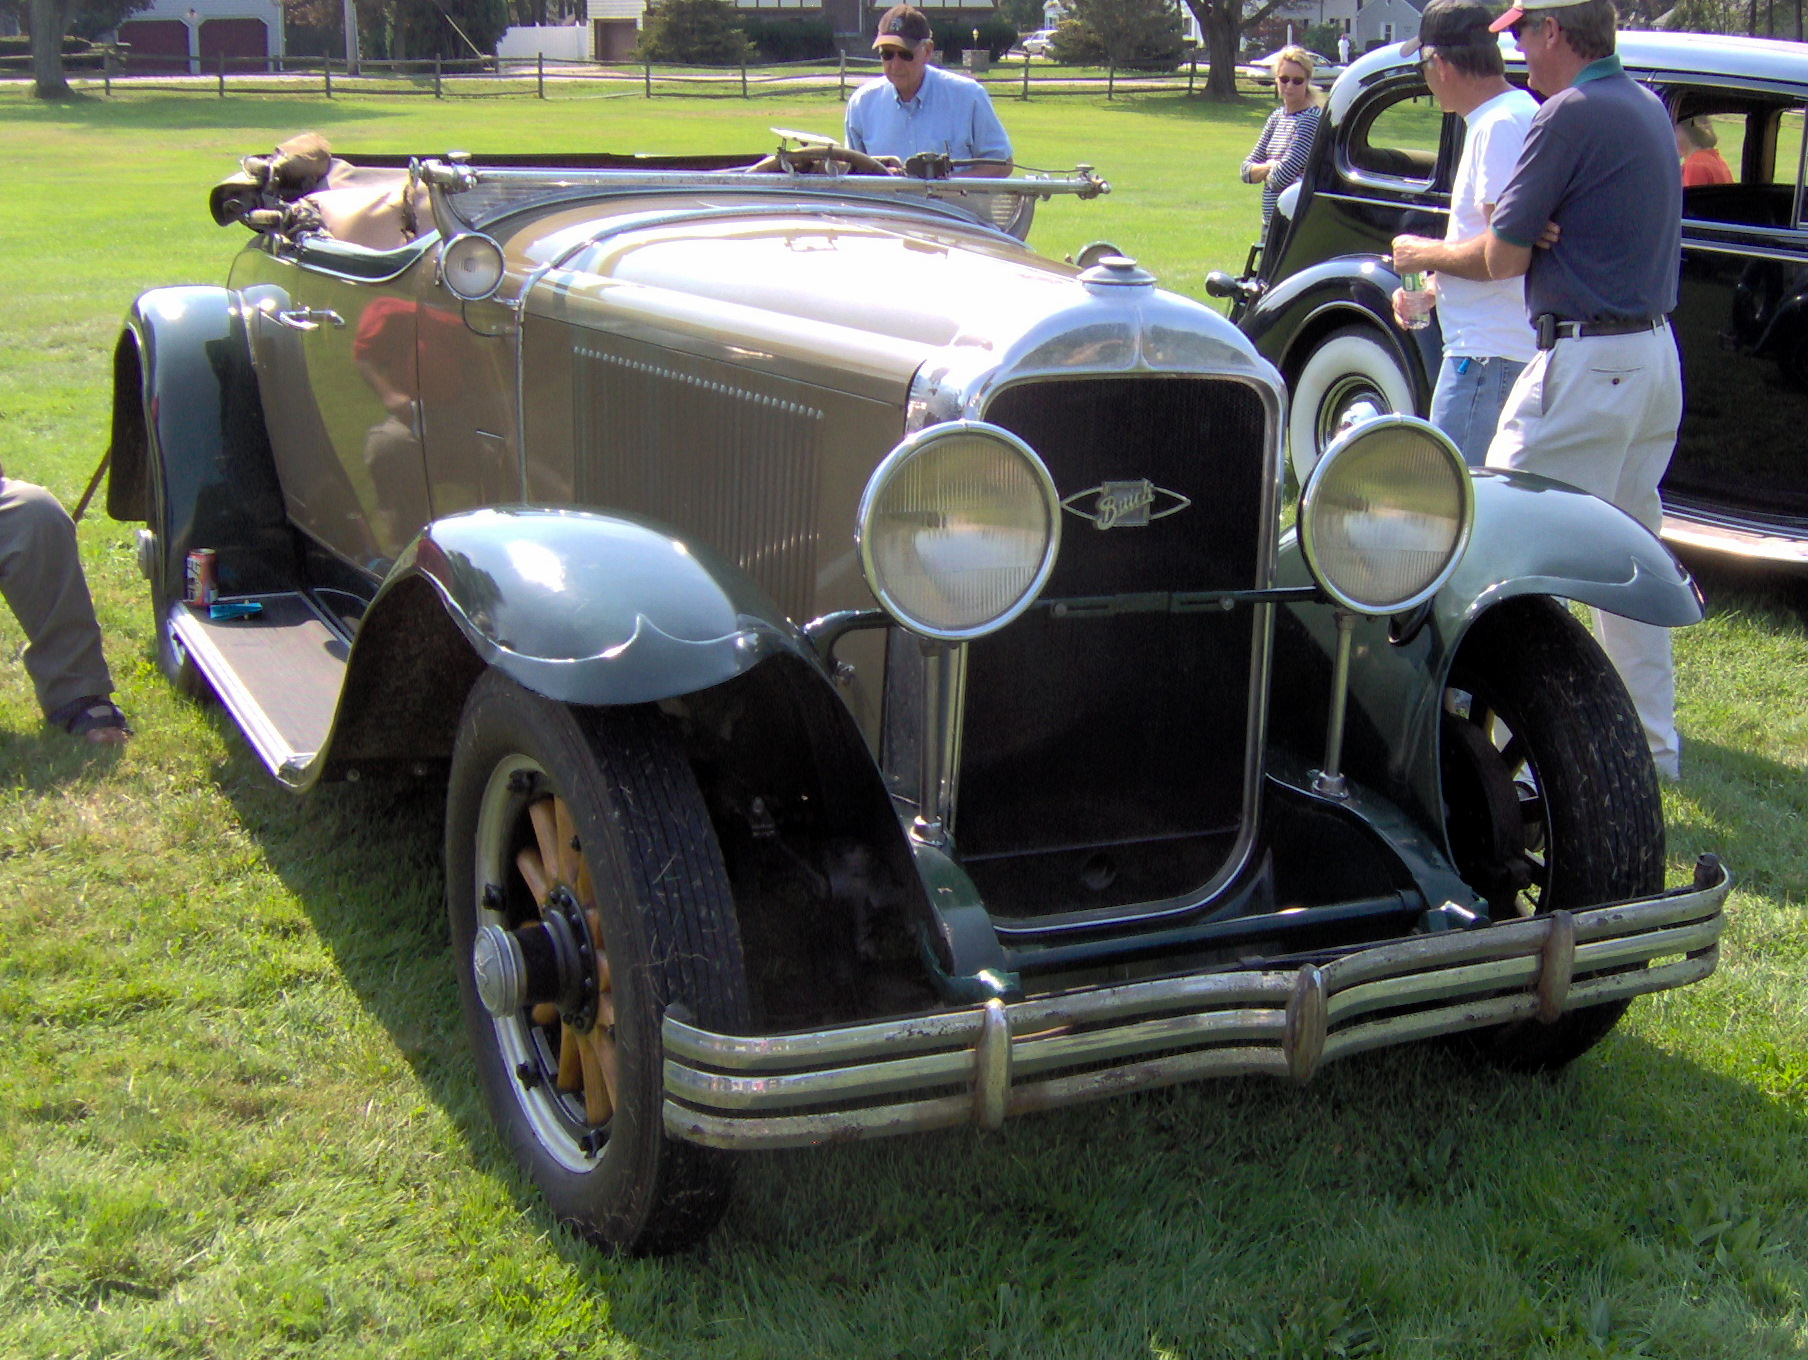 File:1929 Buick roadster.JPG - Wikimedia Commons